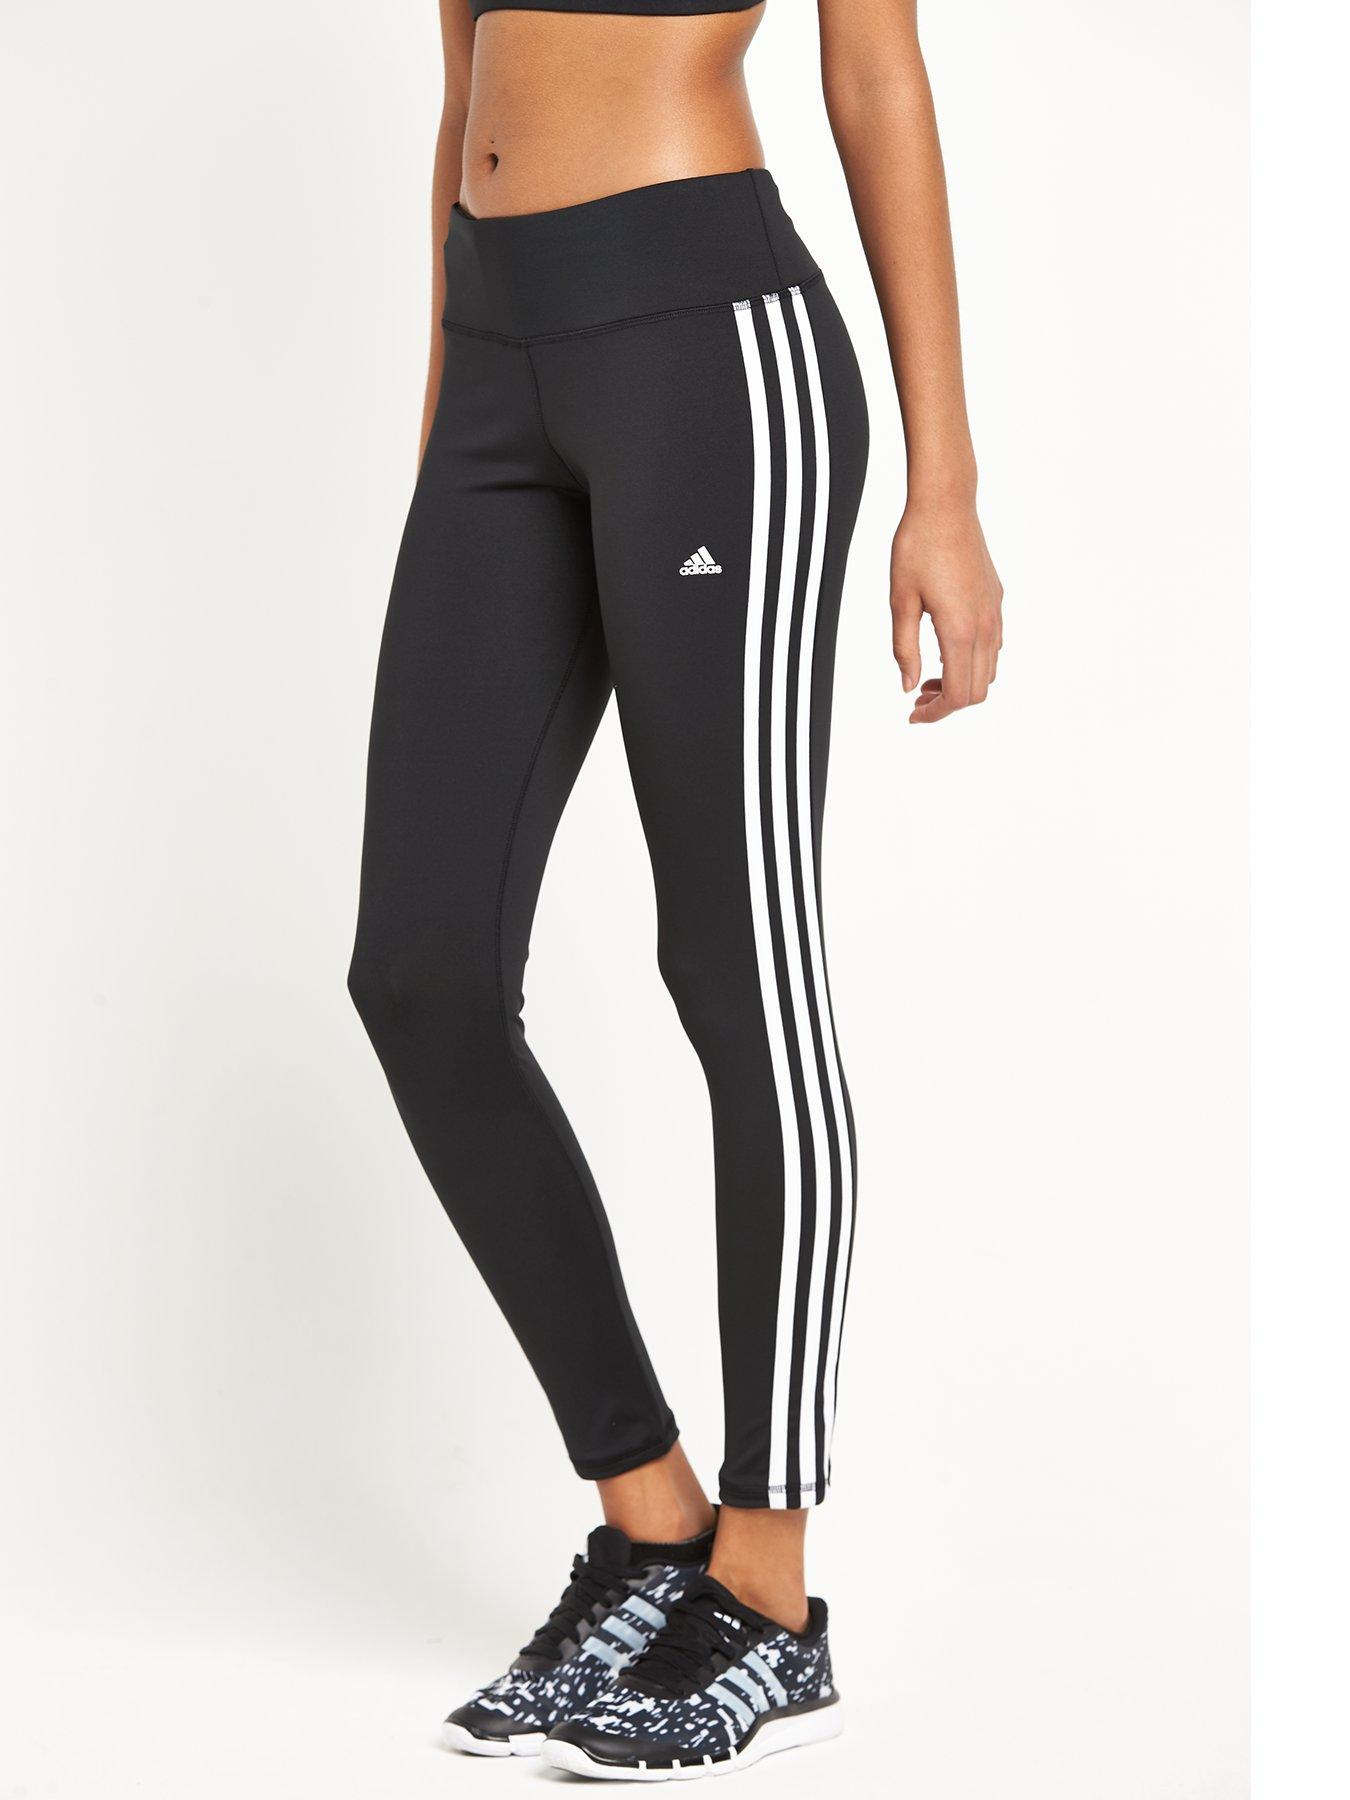 Decathlon Adidas Leggings Up To 74 Off Free Shipping